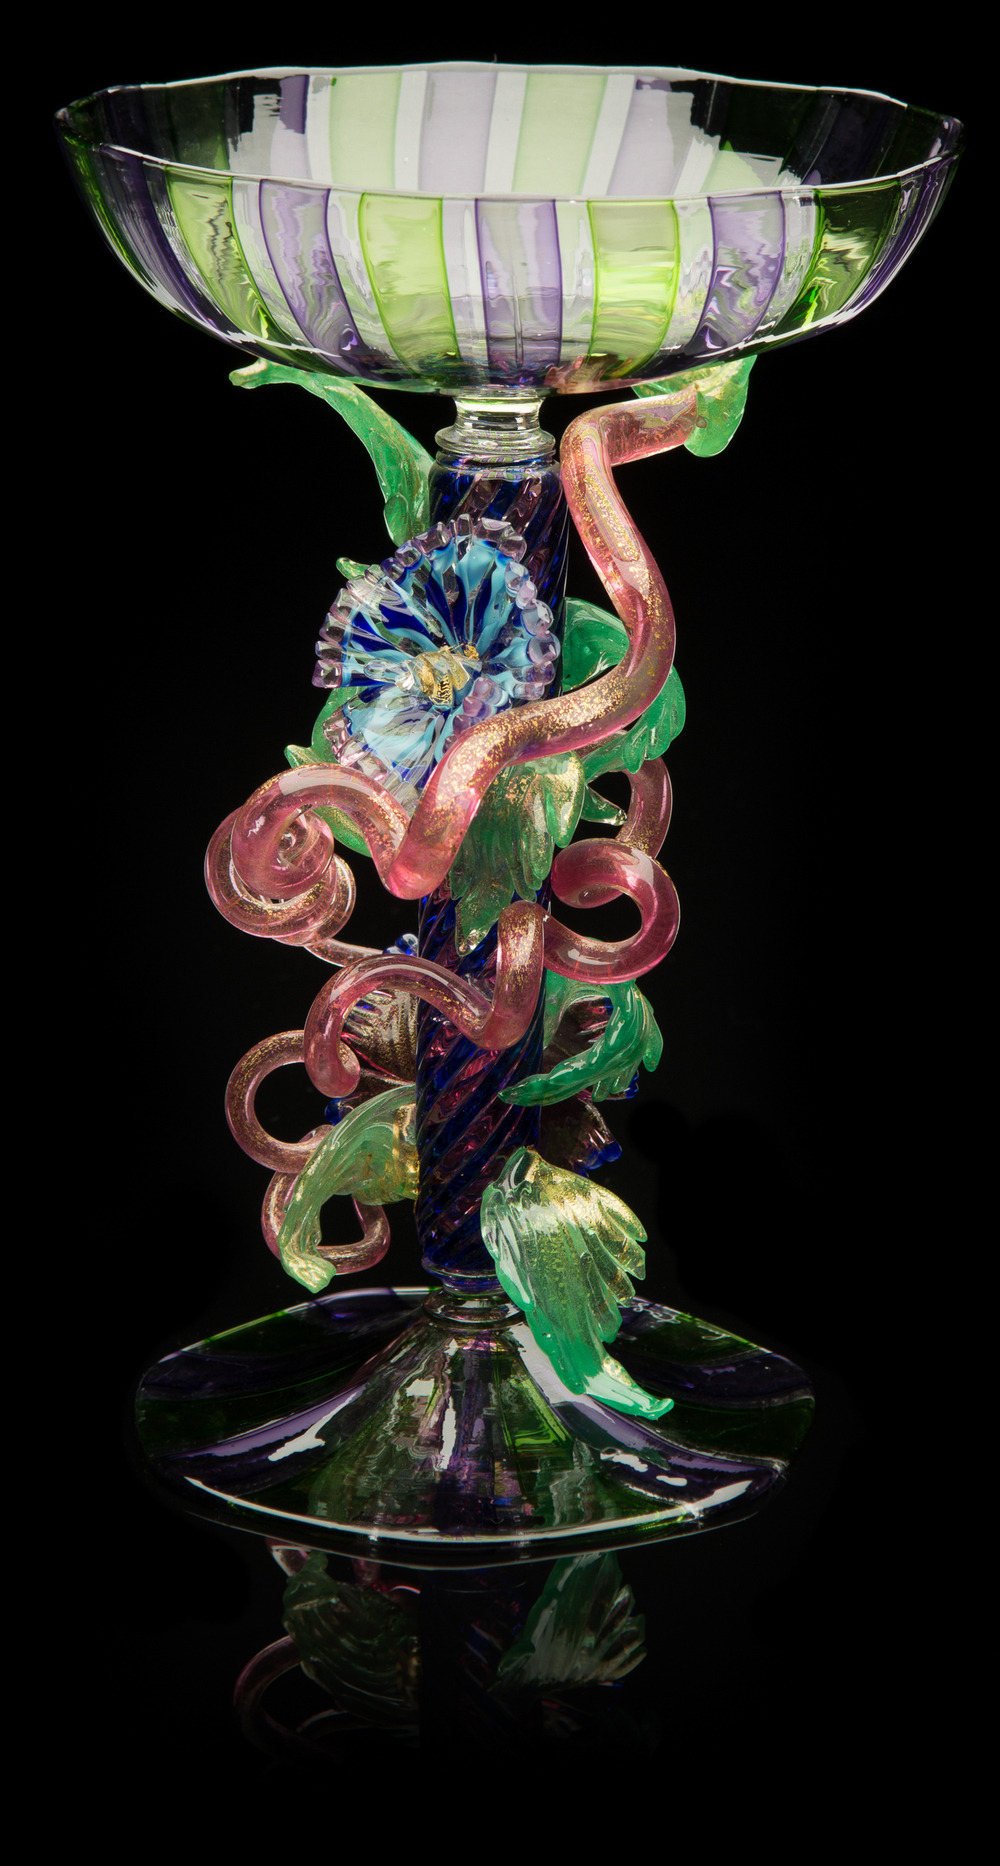 Lino Tagliapietra,  Floral   Goblet  (1991-1994, glass and gold leaf, 9 x 6 1/4 x 6 1/4 inches), LT.58